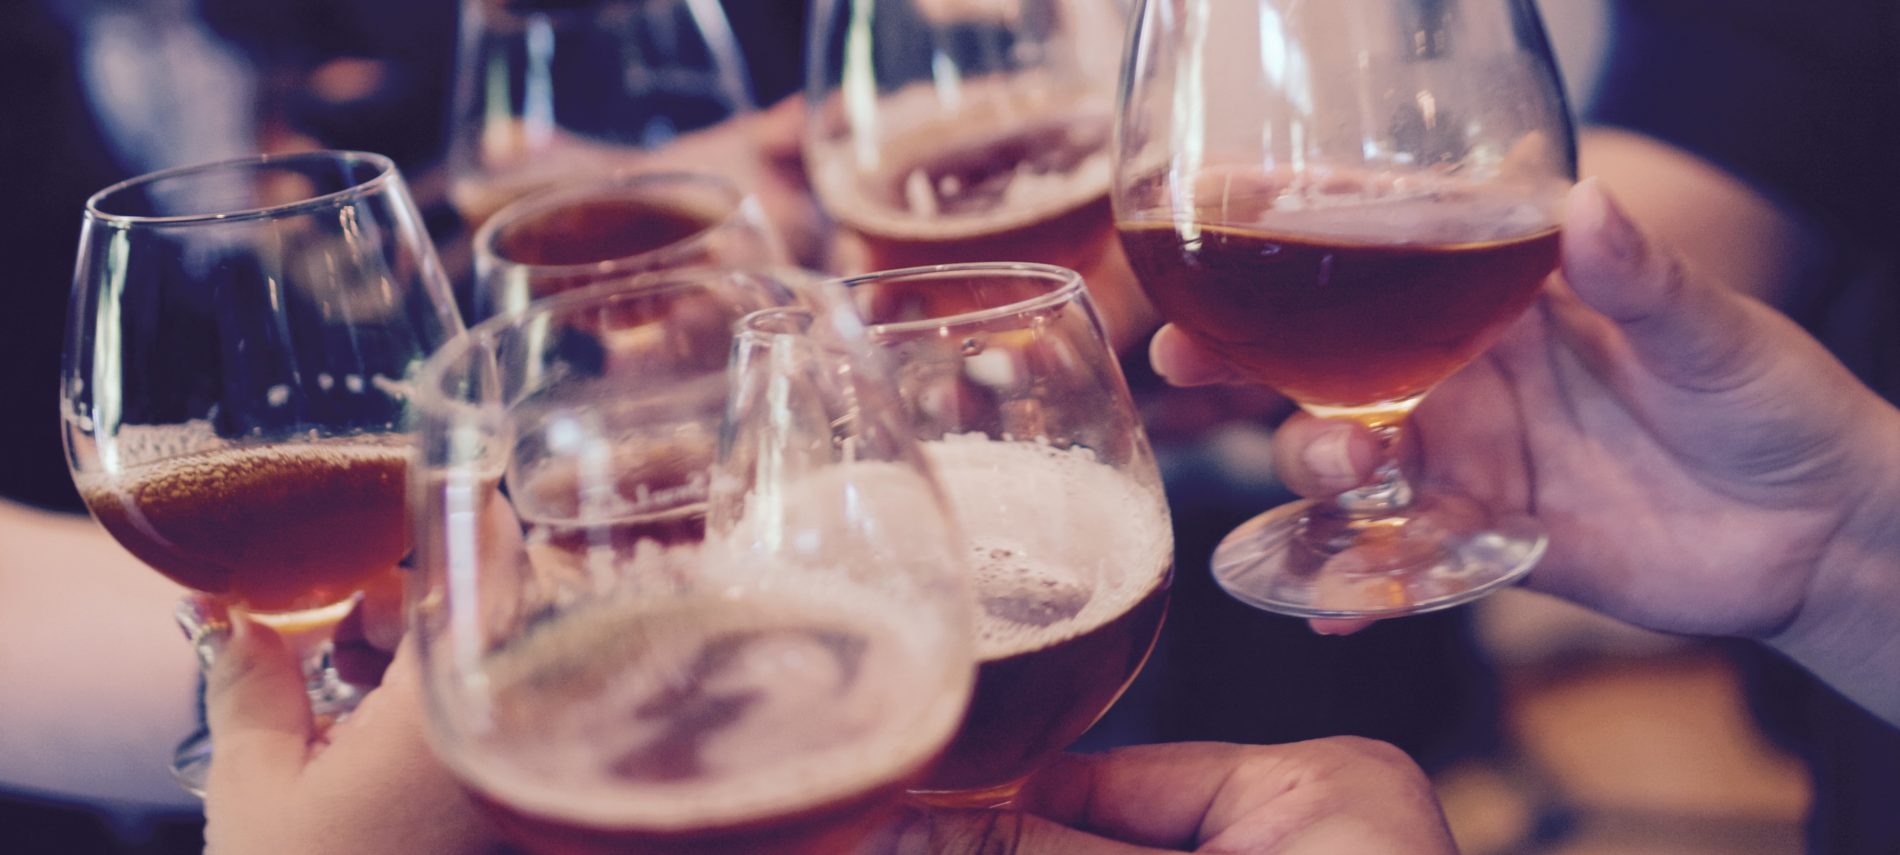 Hands cheersing small glasses of beer